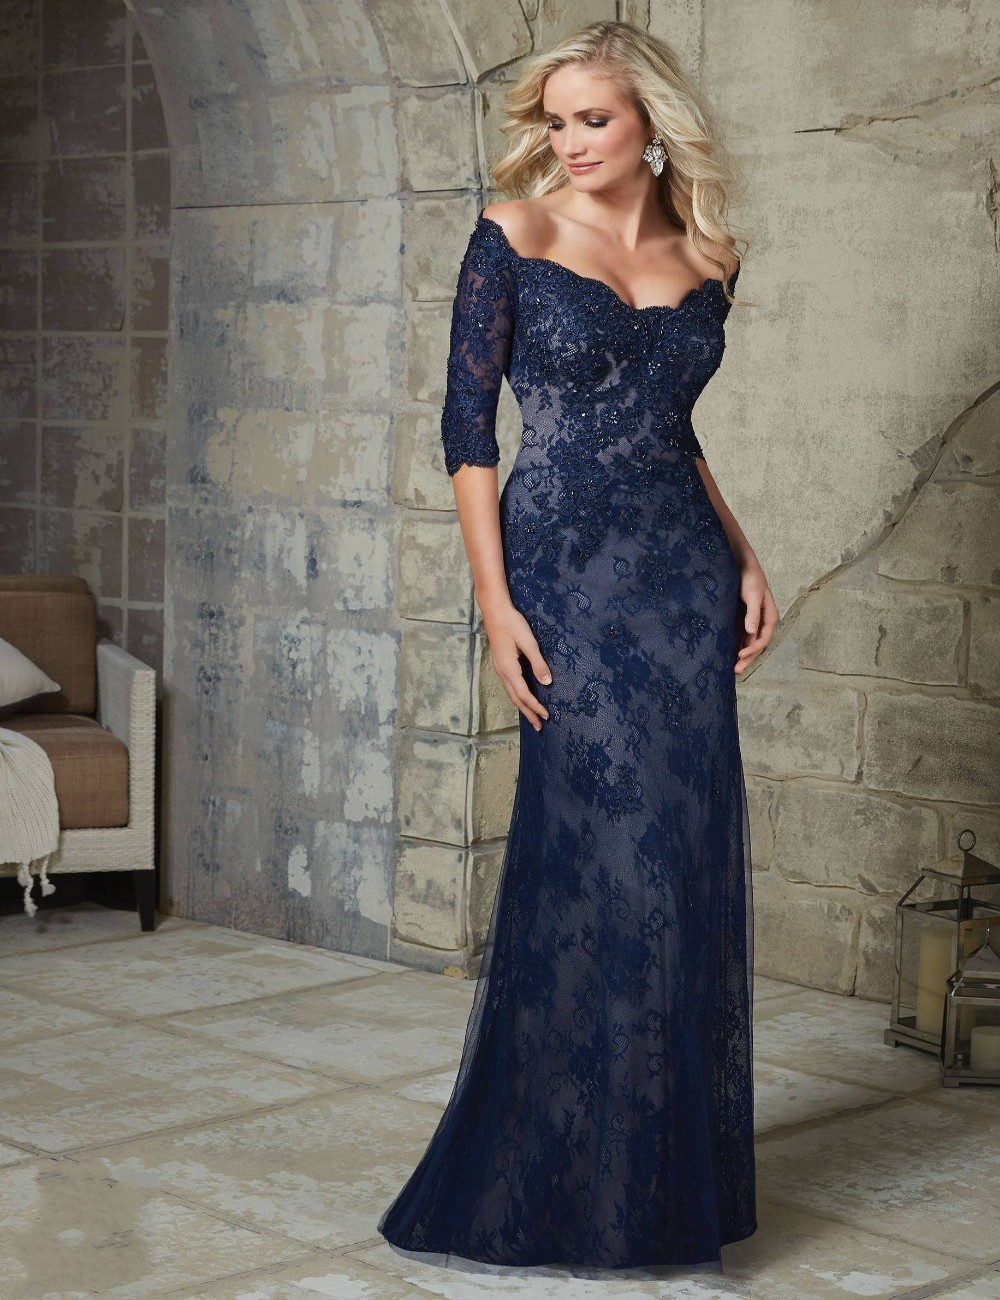 e6648bf0e4ce9 Vestidos De Fiesta 2016 New Design Navy Blue Lace Evening Dress Party  Formal Gowns Custom Made Mother Of The Bride Dresses 2016-in Evening  Dresses from ...